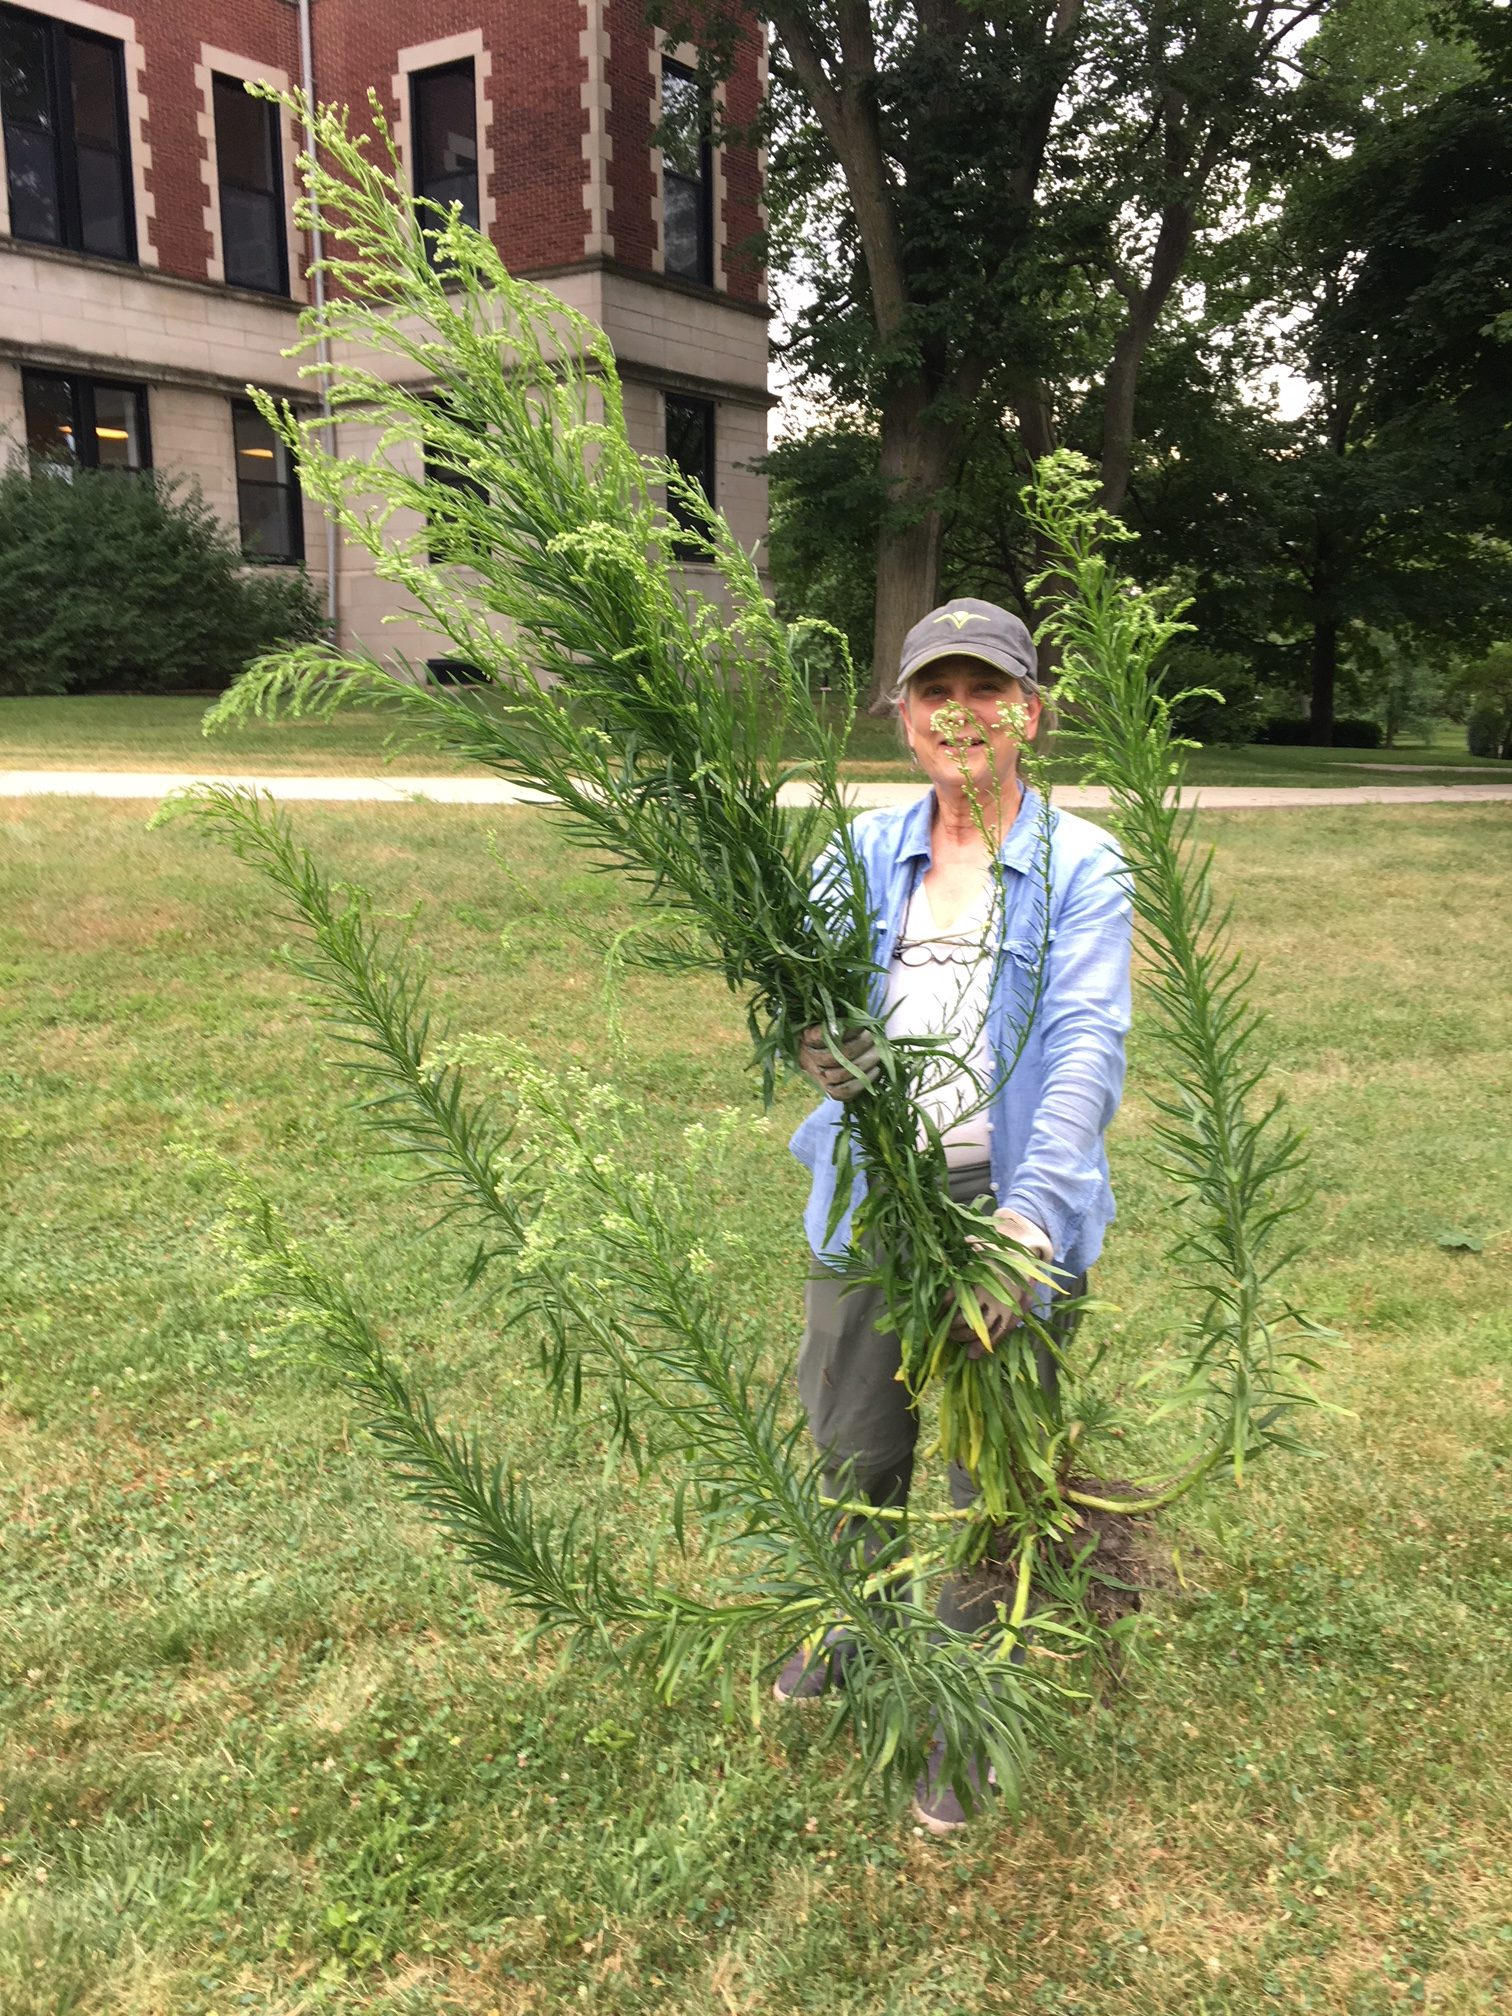 Giant horseweed at Civic Center Garden